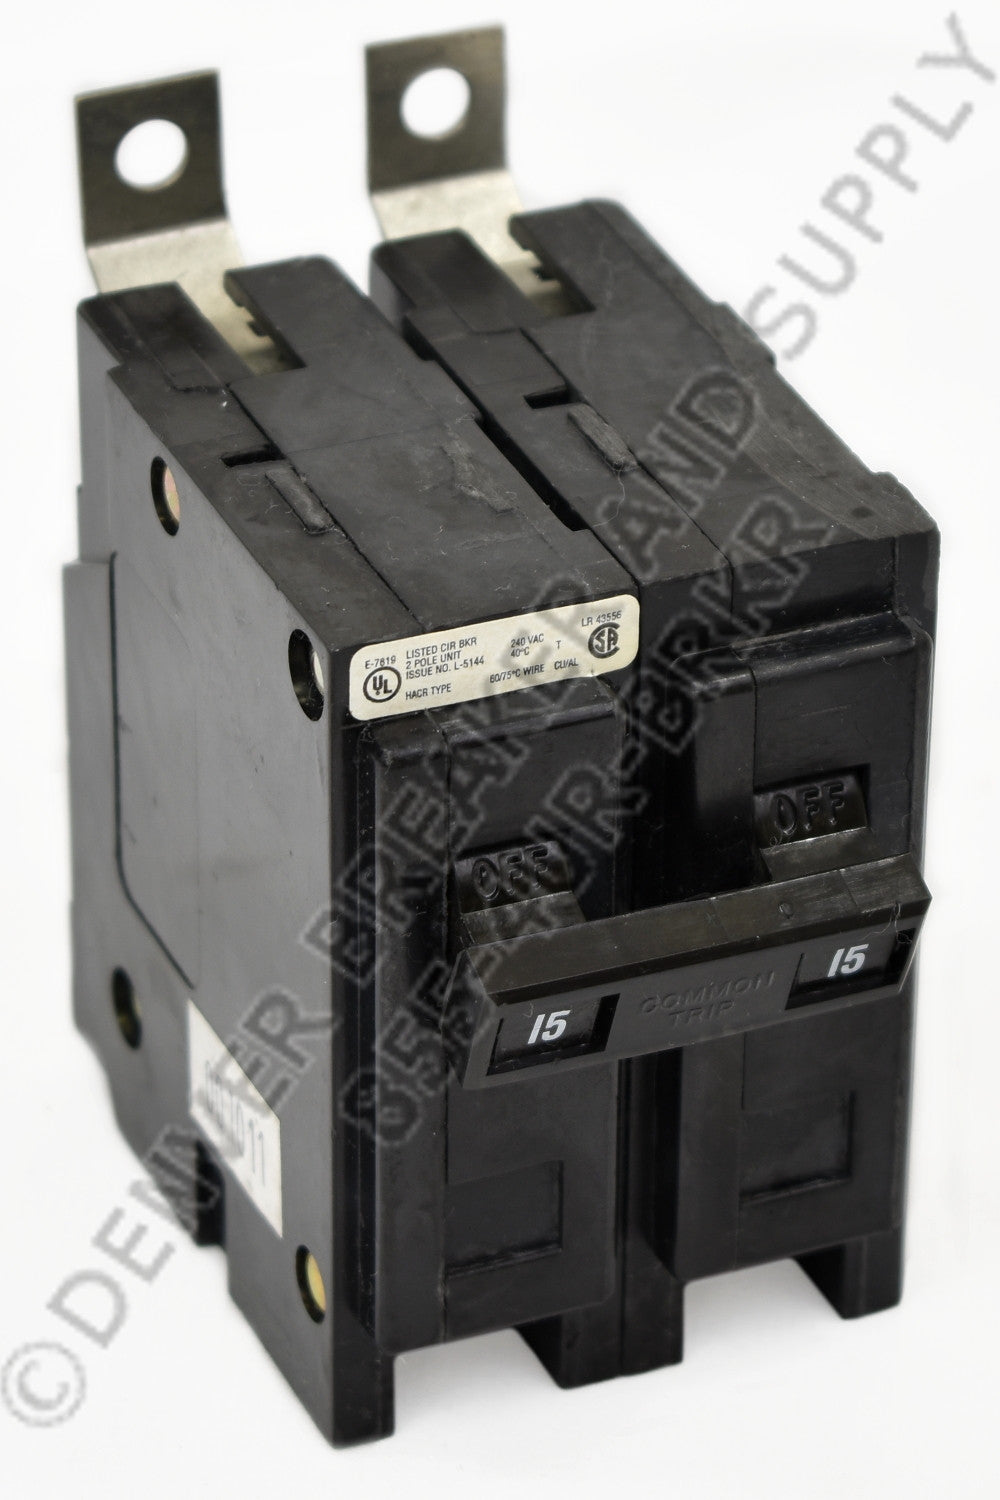 Cutler Hammer BAB2050 Circuit Breakers